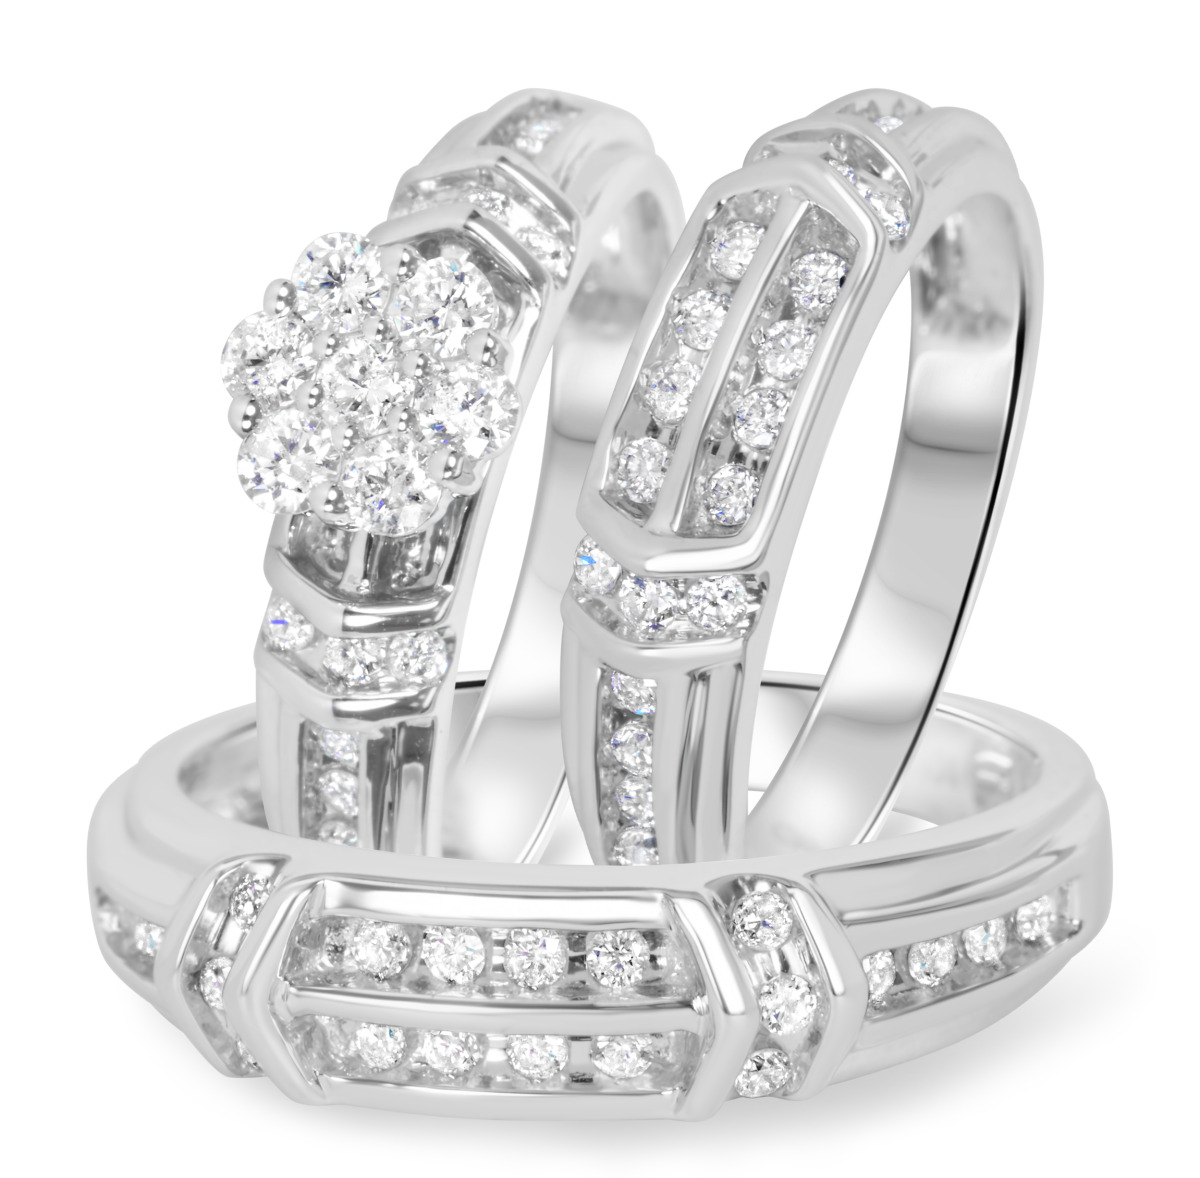 White Gold Wedding Rings Sets | 1 1 10 Carat Tw Diamond Trio Matching Wedding Ring Set 14k White